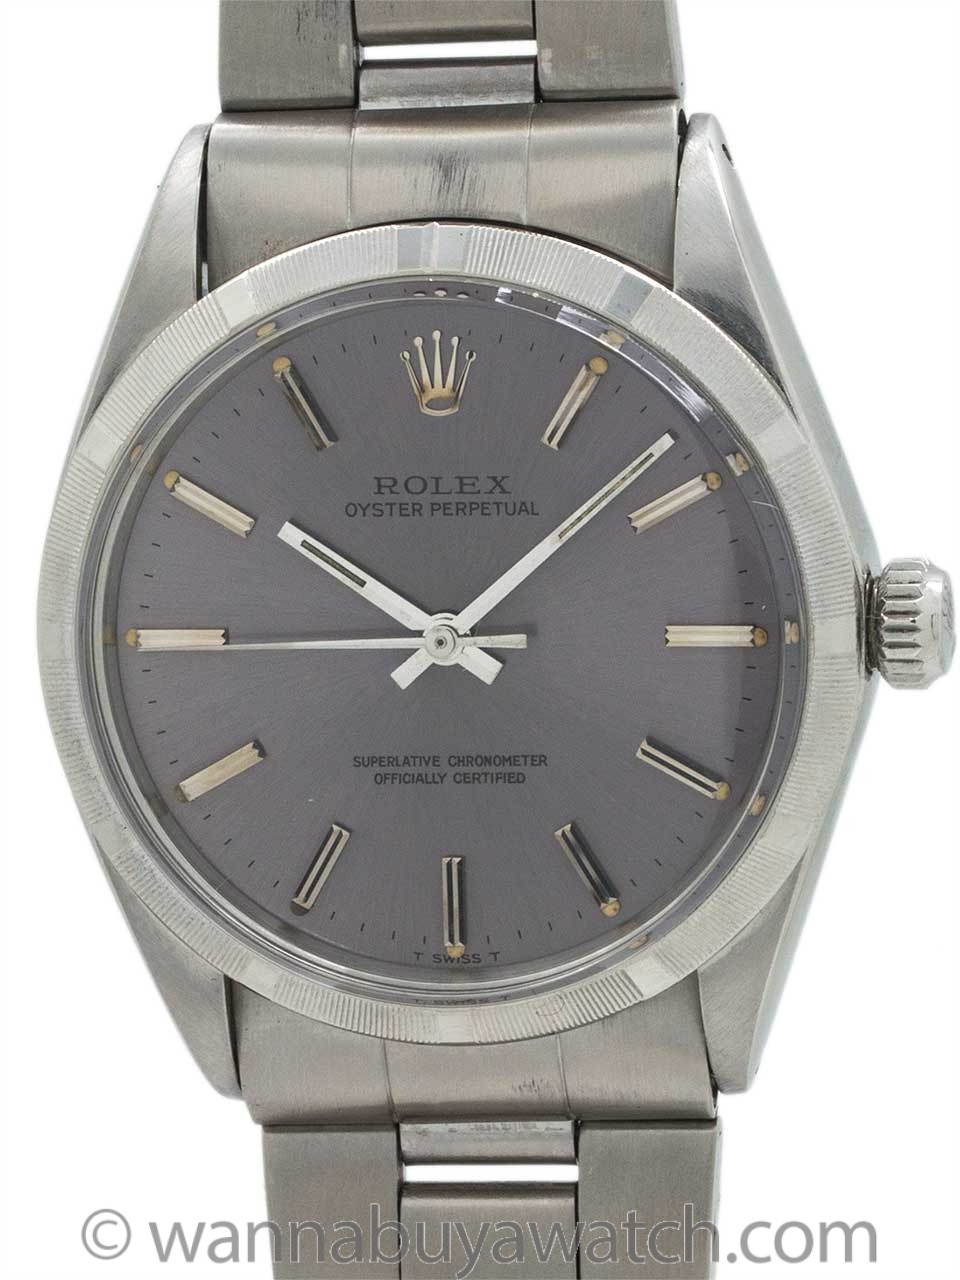 Rolex Oyster Perpetual ref 1002 Gray Purple Dial circa 1969